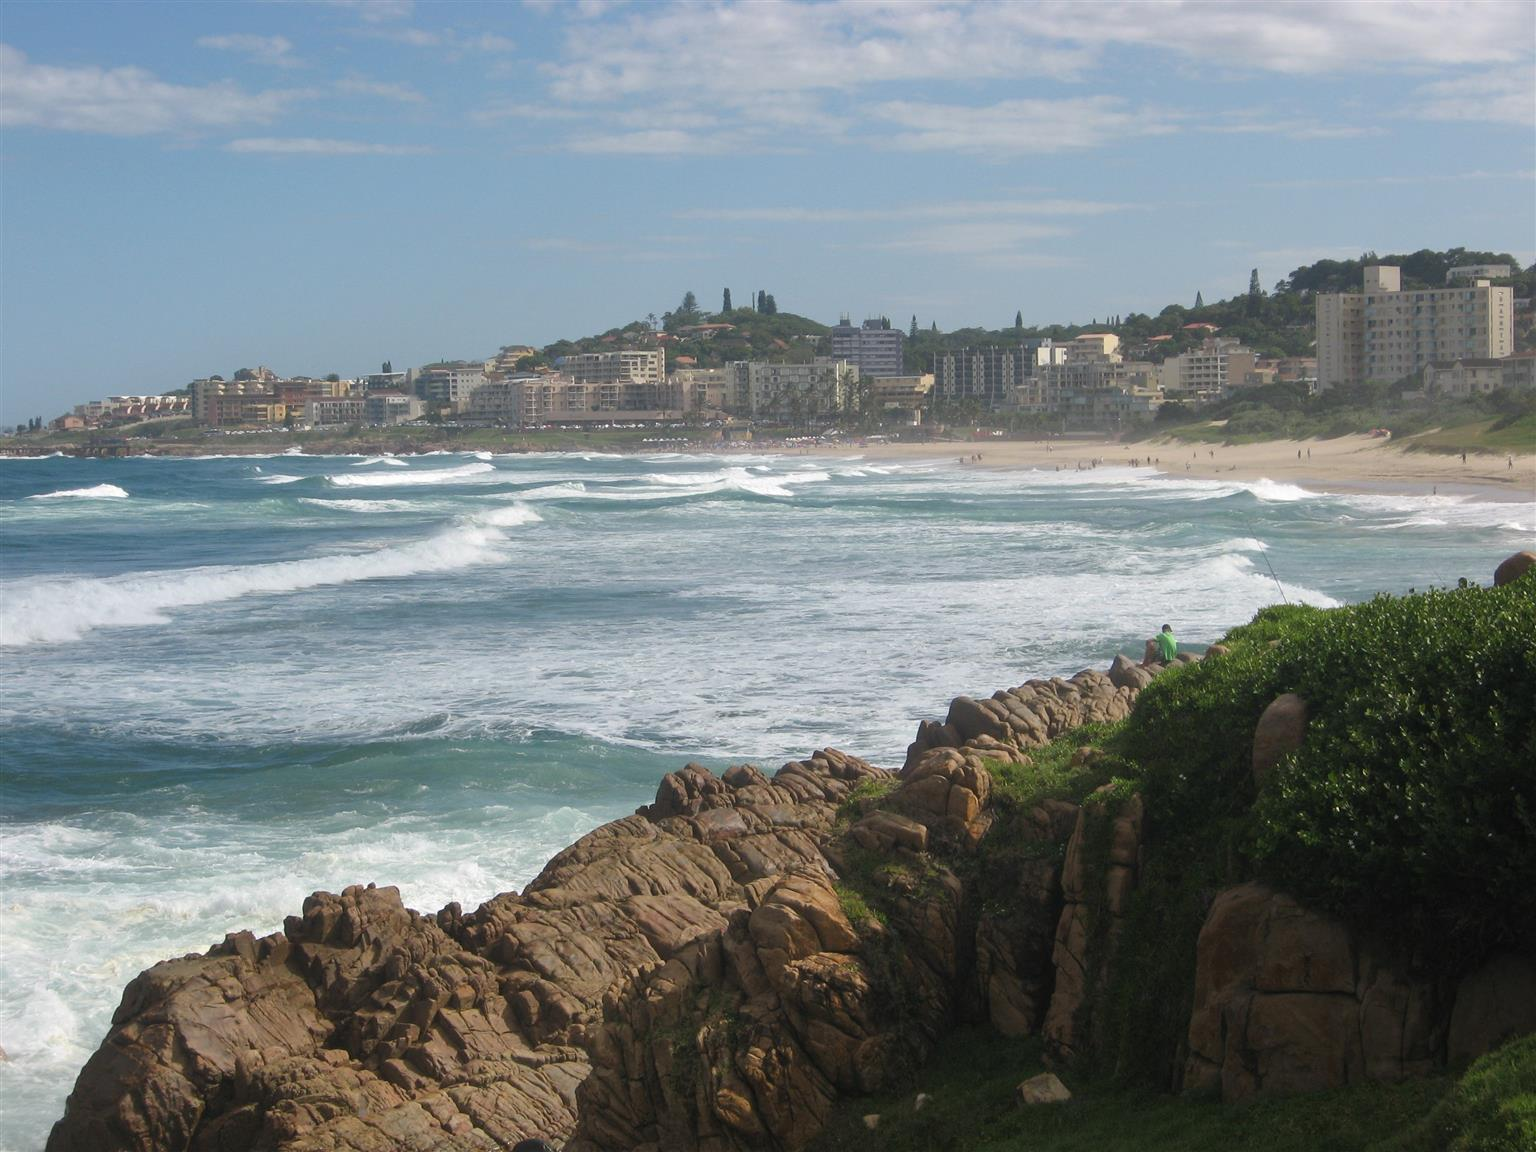 SEA SUN FUN in the MARGATE SUN 1, 2 AND 3 BEDROOM 2 BATHROOM SELF-CATER HOLIDAY FLAT FROM R125 PPPN